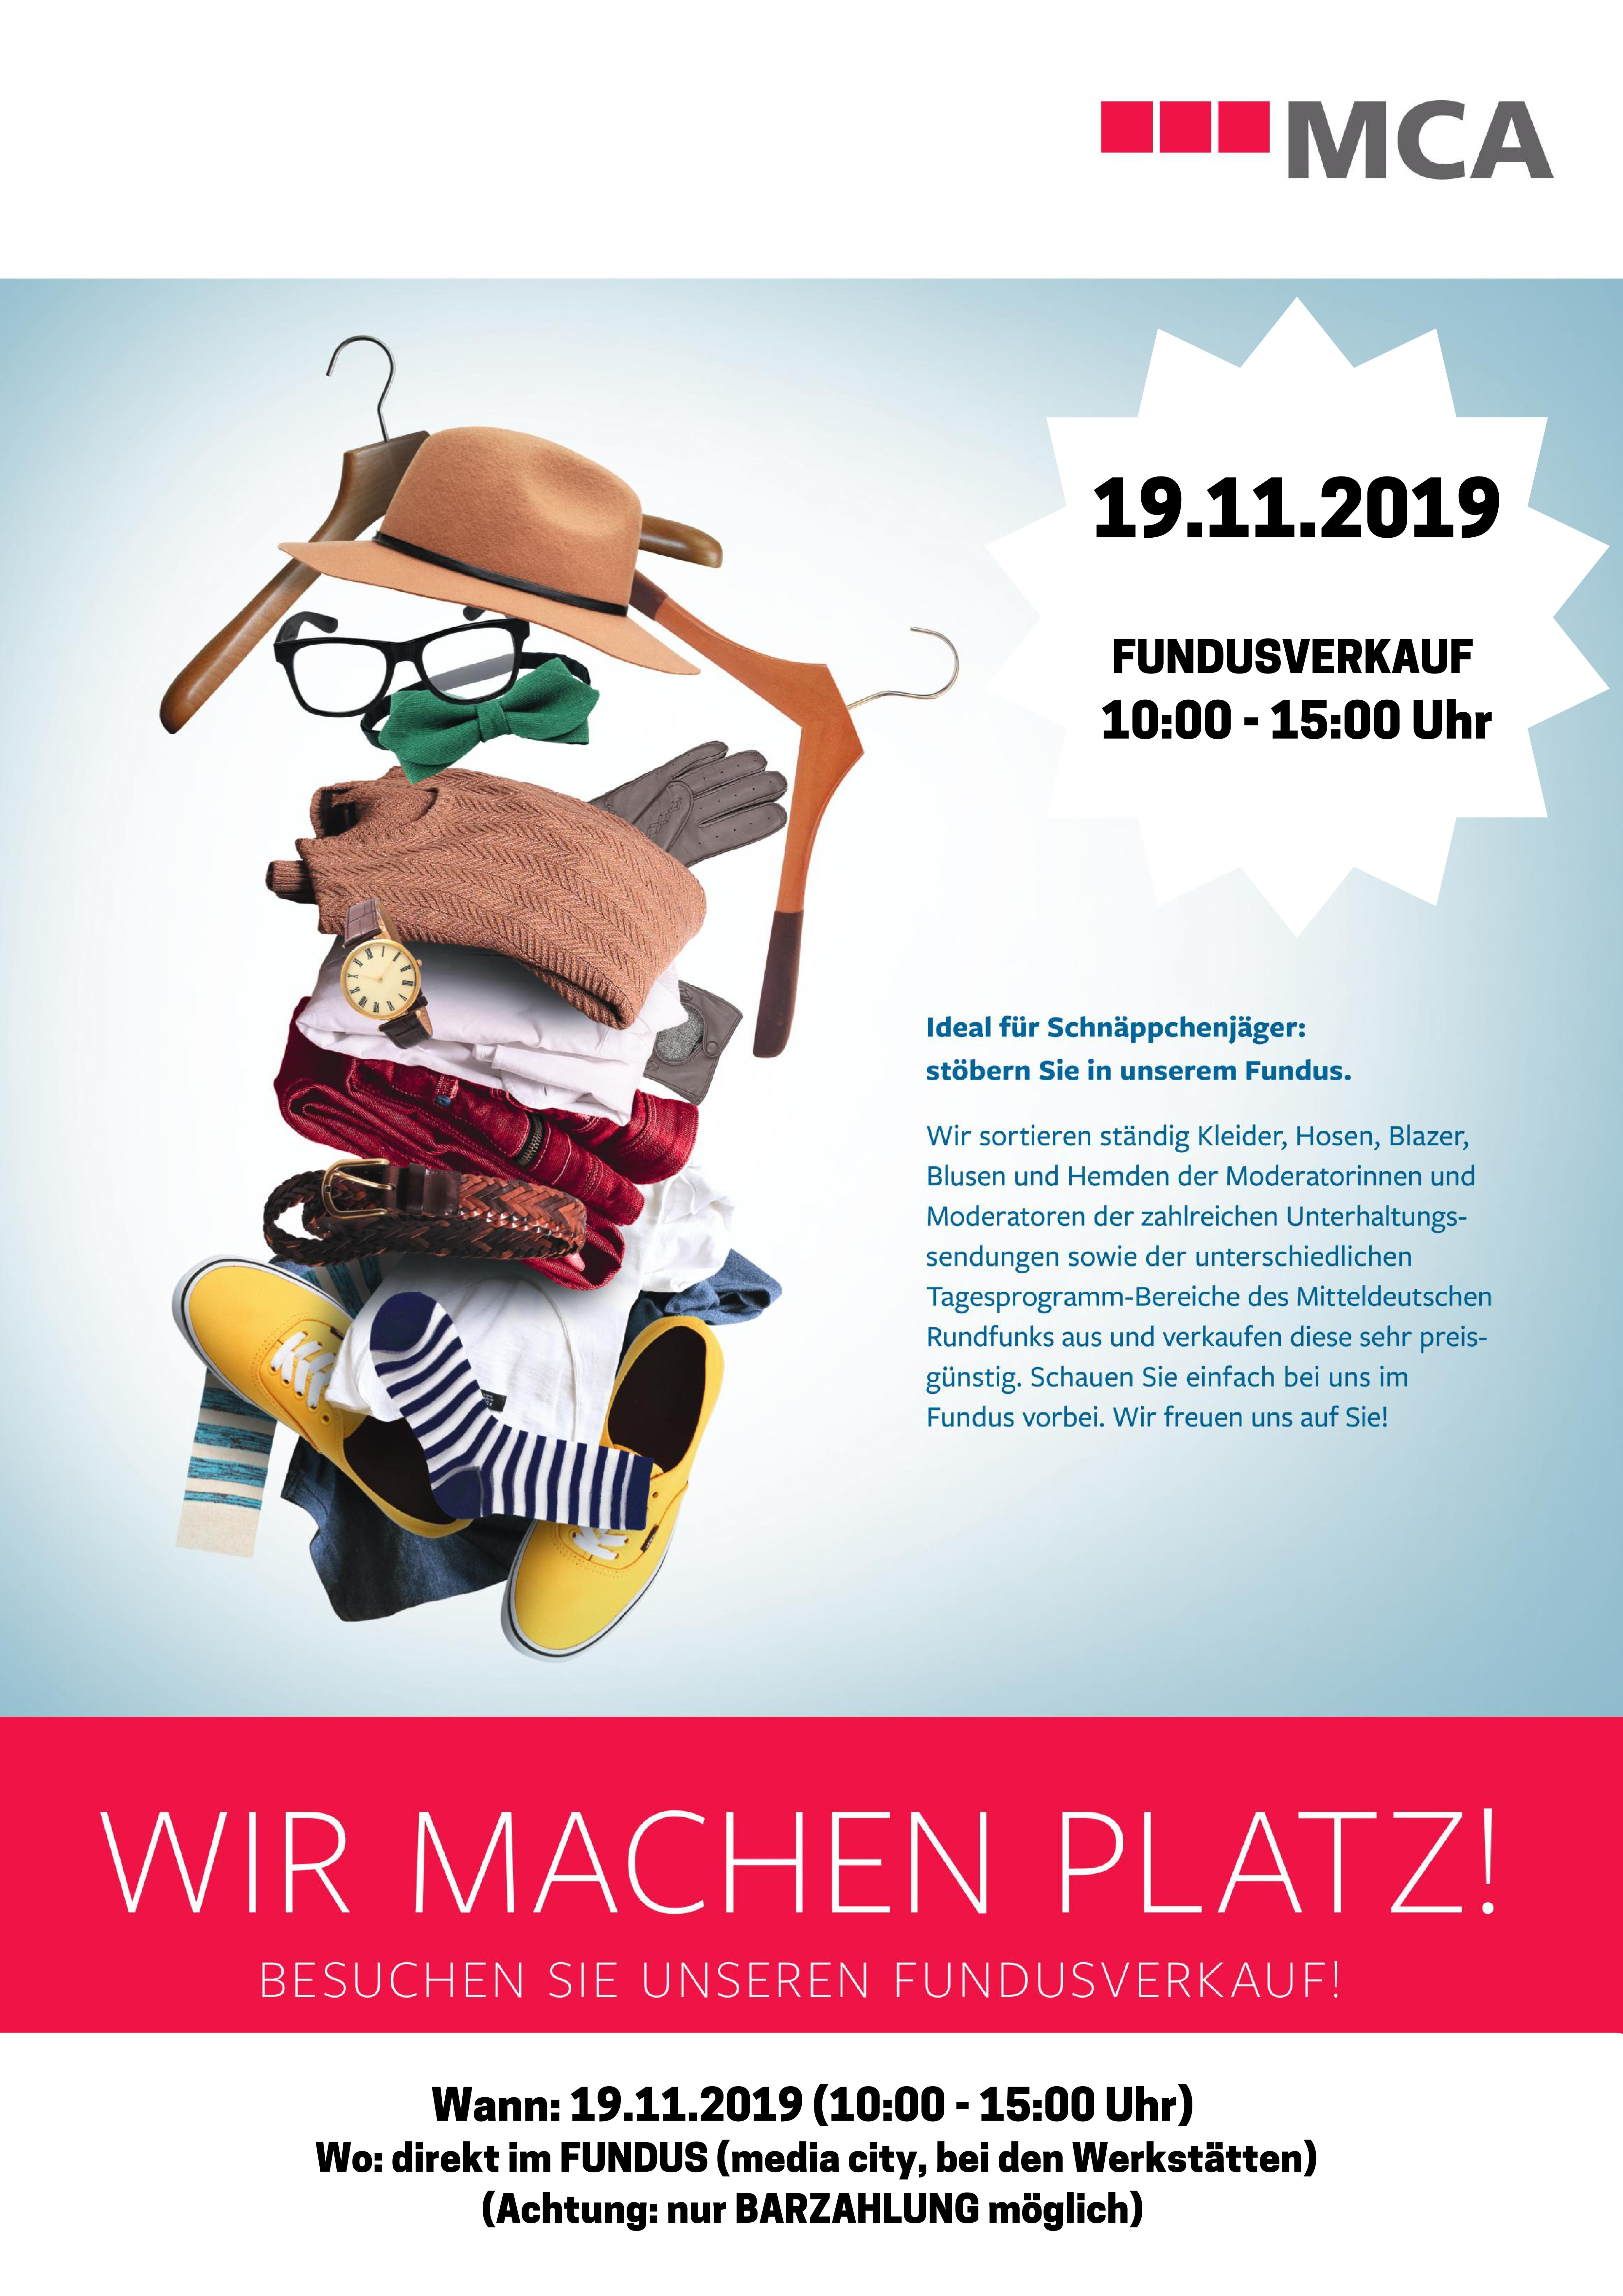 Fundusverkauf in der media city leipzig am 19.11.2019